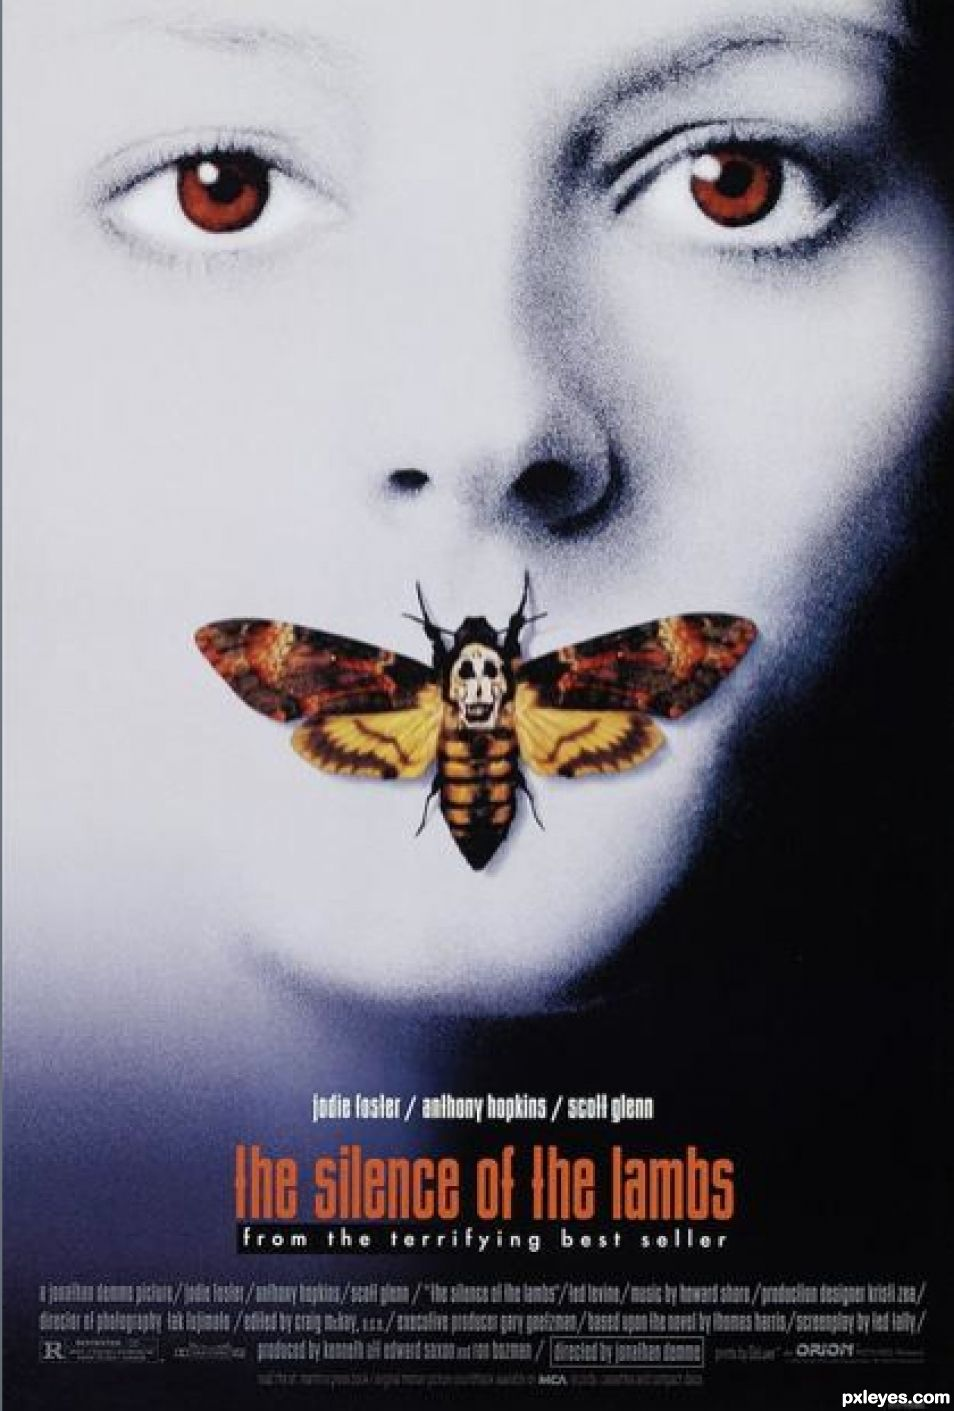 Photoshop guide the making of the silence of the lambs pxleyes creation of the silence of the lambs step 1 baditri Gallery